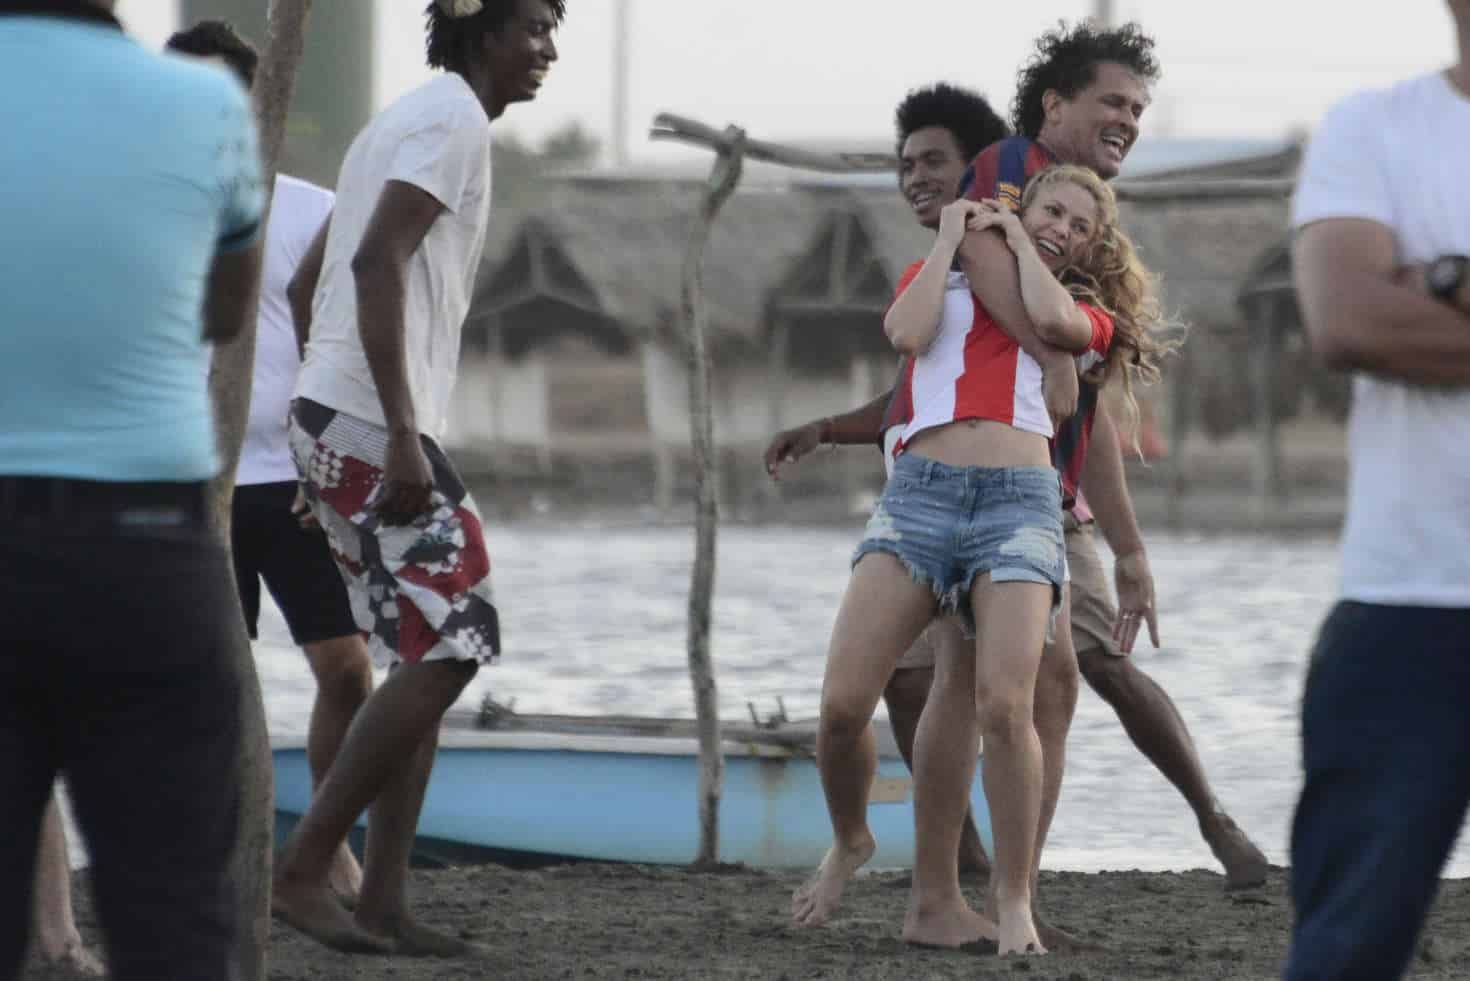 Video la bicicleta Shakira y Carlos Vives